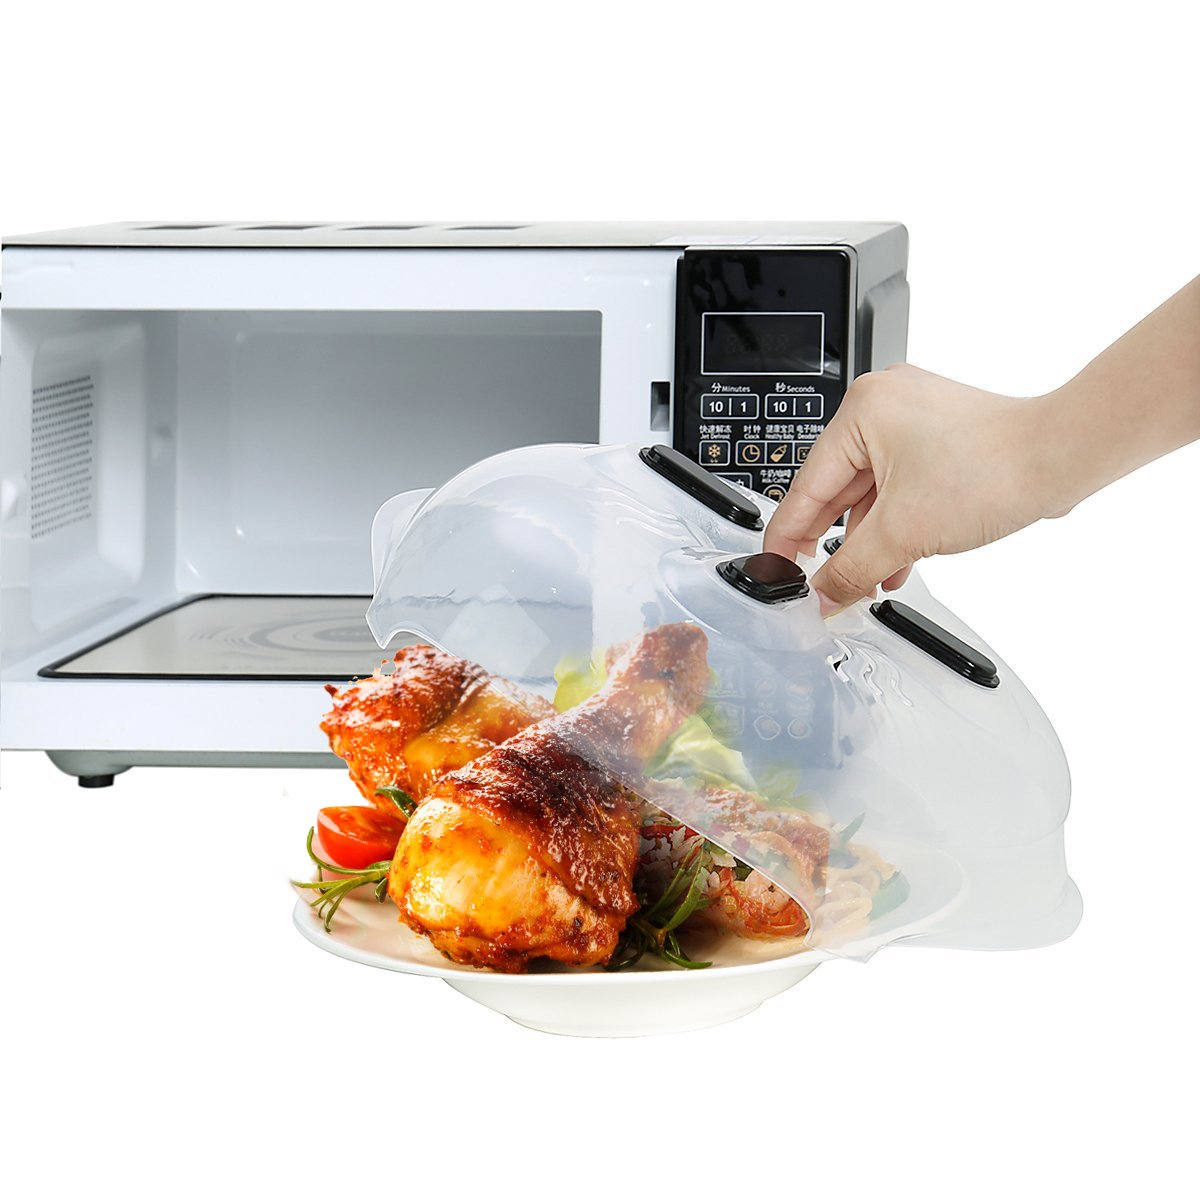 Microwave plate cover – Best Anti Sputtering Touch Plate Microwave Cover with Steam Vent – Easy to Use, Ideal for Any Food, Dishwasher Safe – BPA Free Microwave Cover Ideal as A Gift